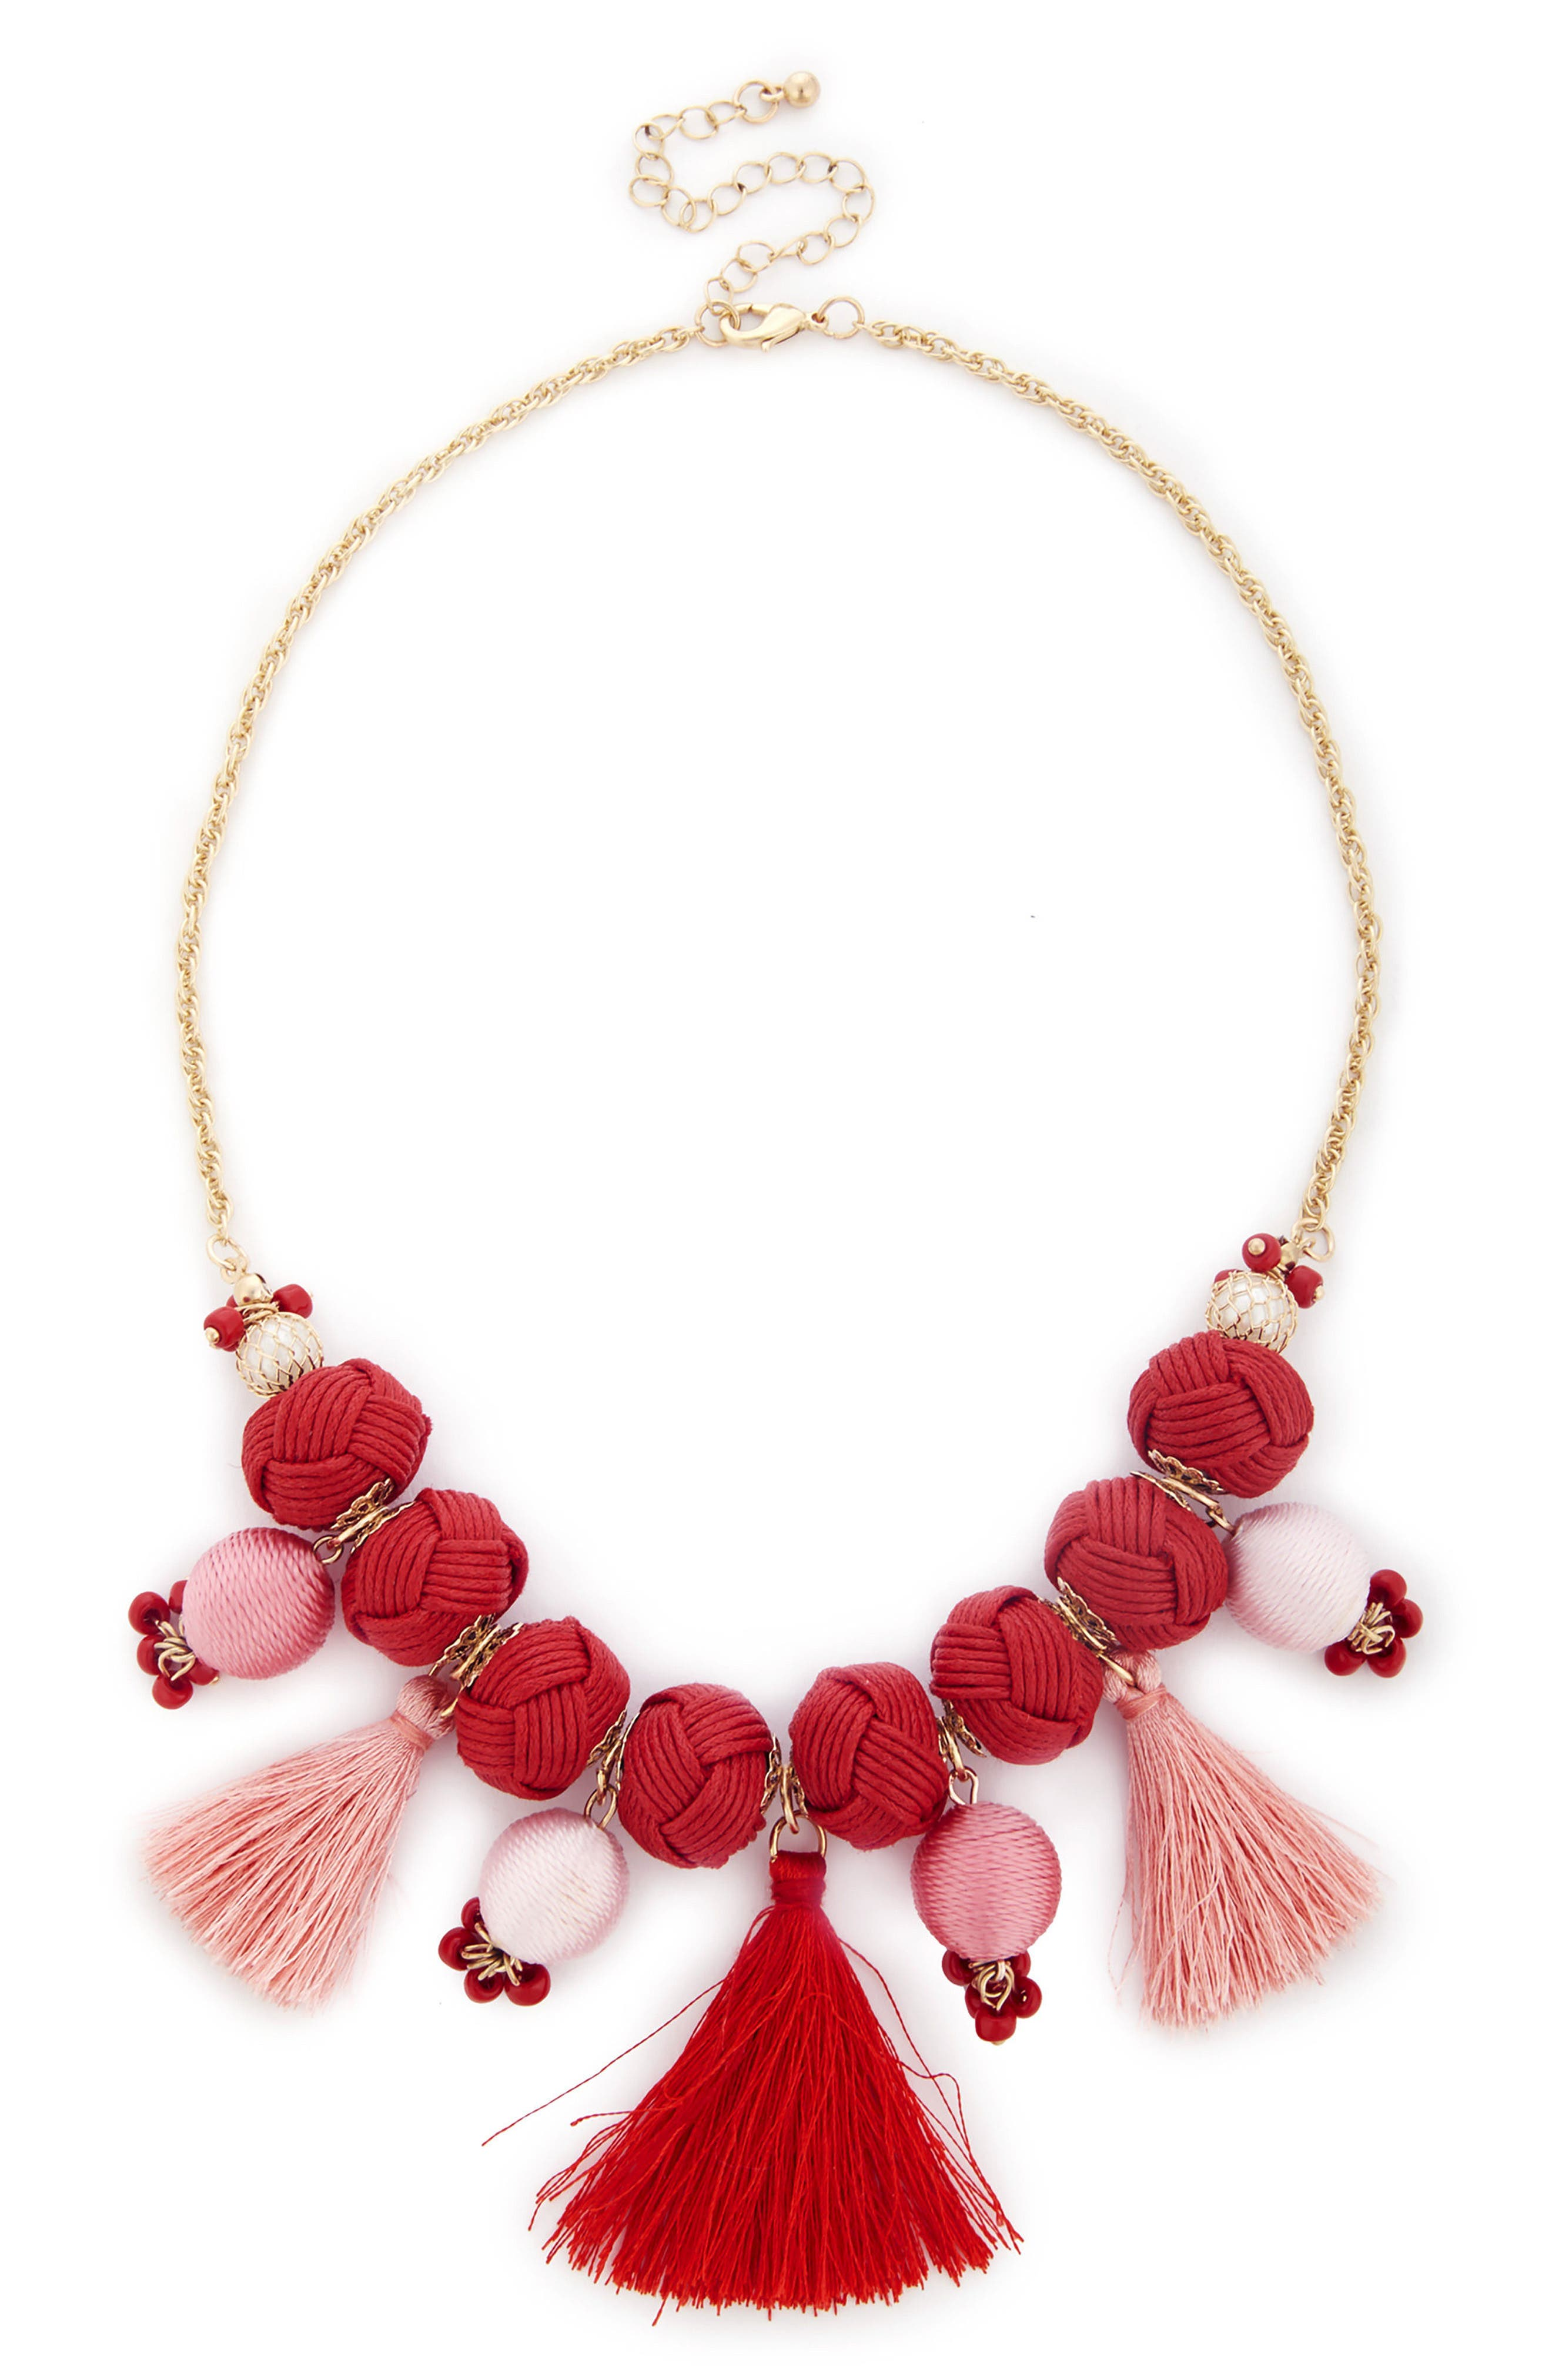 Sole Society Womens Floral Statement Necklace Multi One Size From Sole Society 7TN0u7w